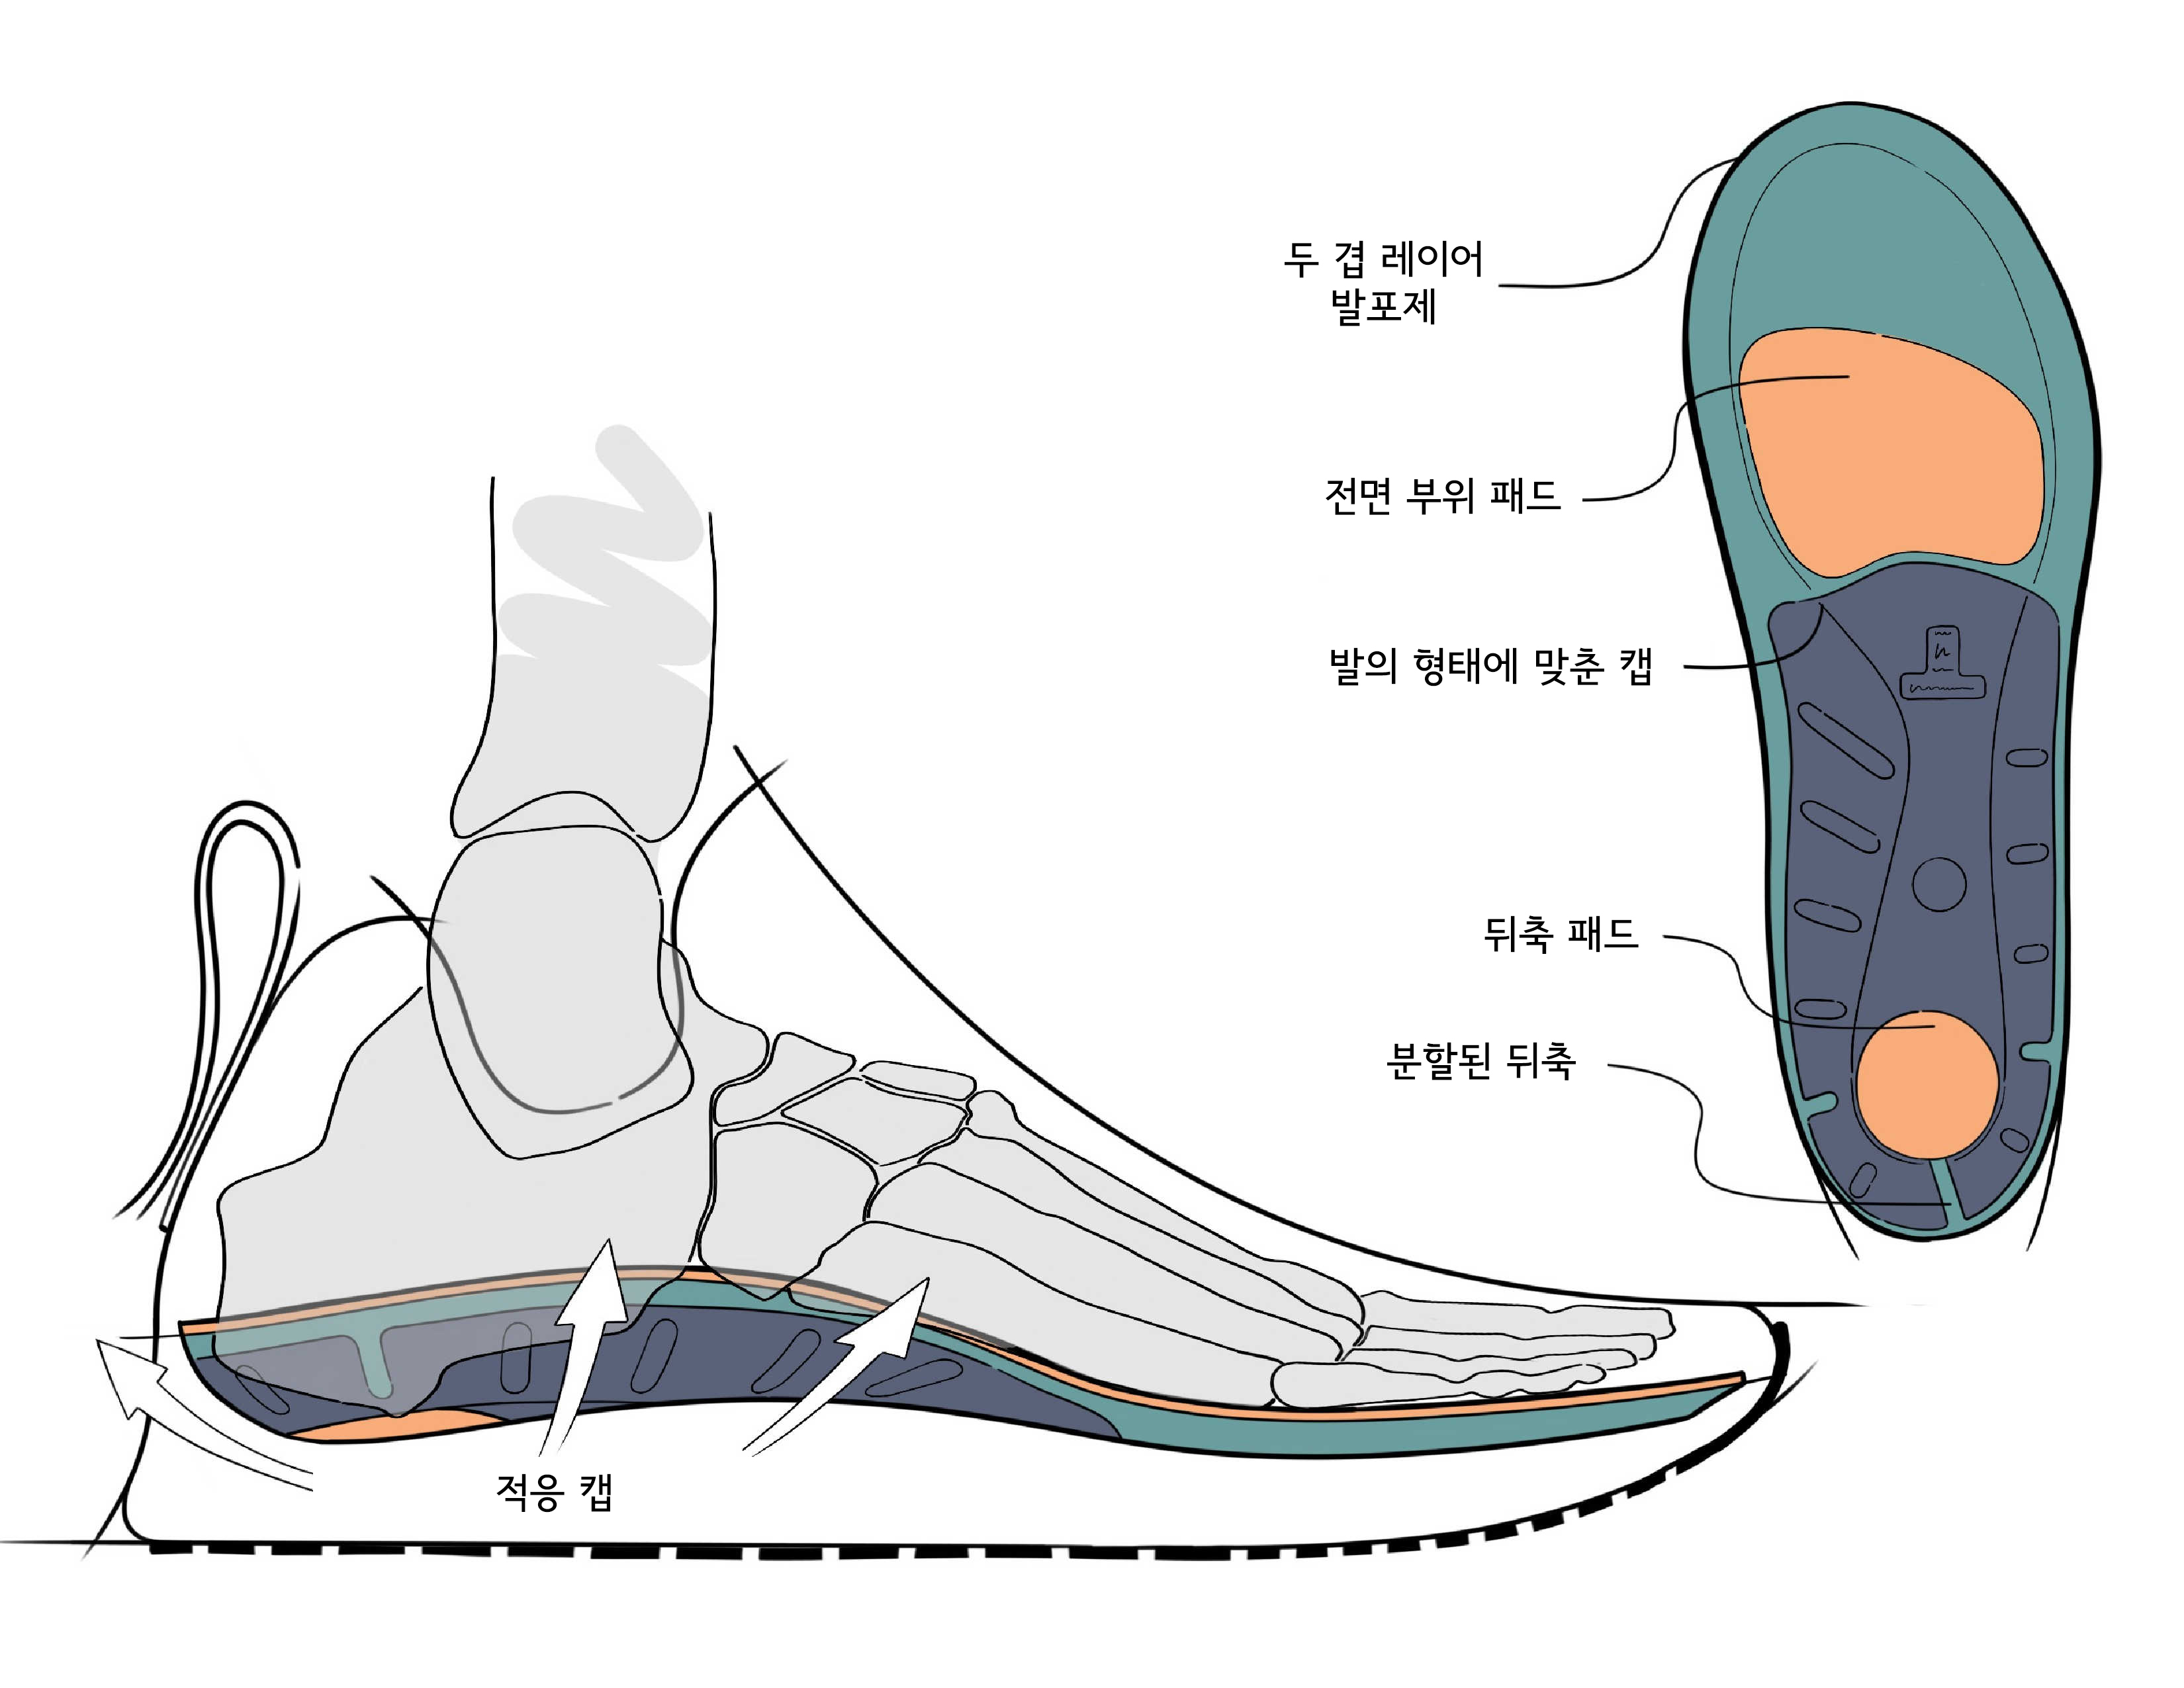 ADAPT_Sketch_in_Shoe_cropped